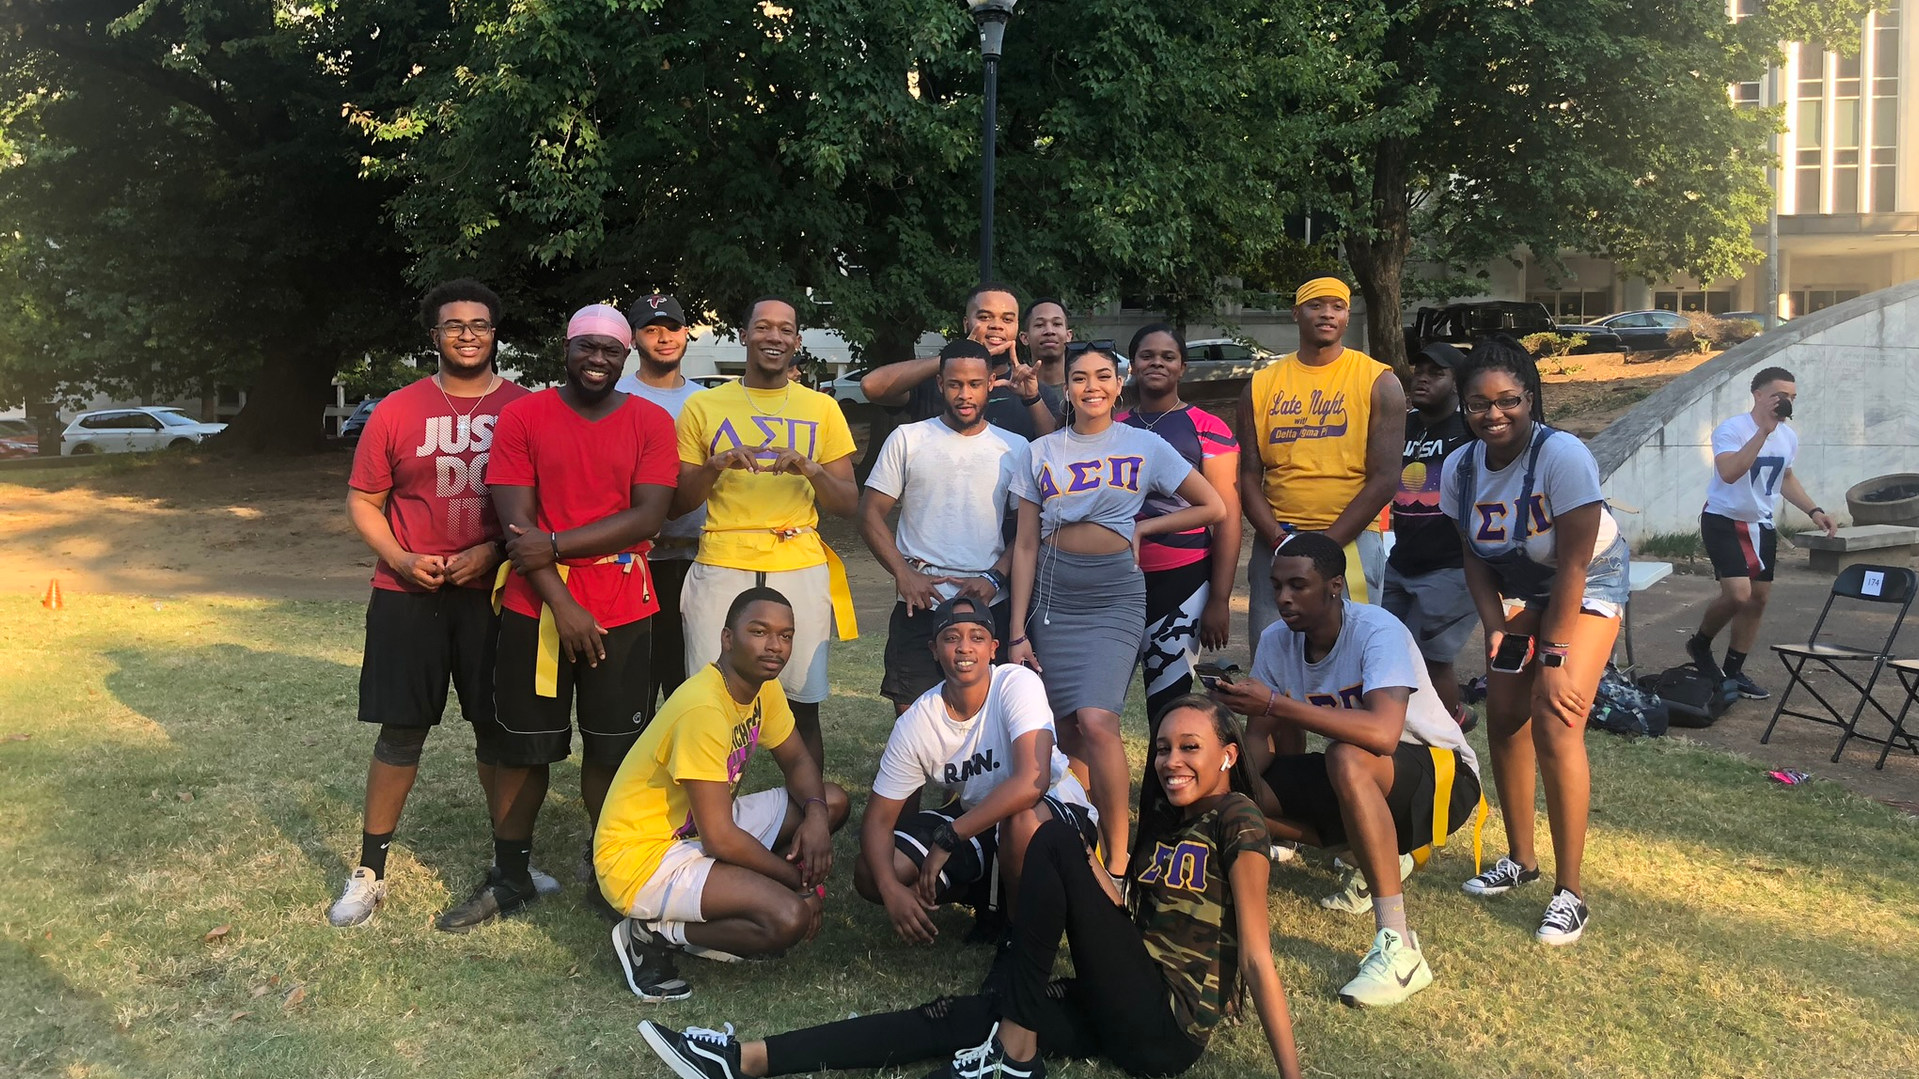 Team Kappa at the first annual DSP vs AKPsi flag football game